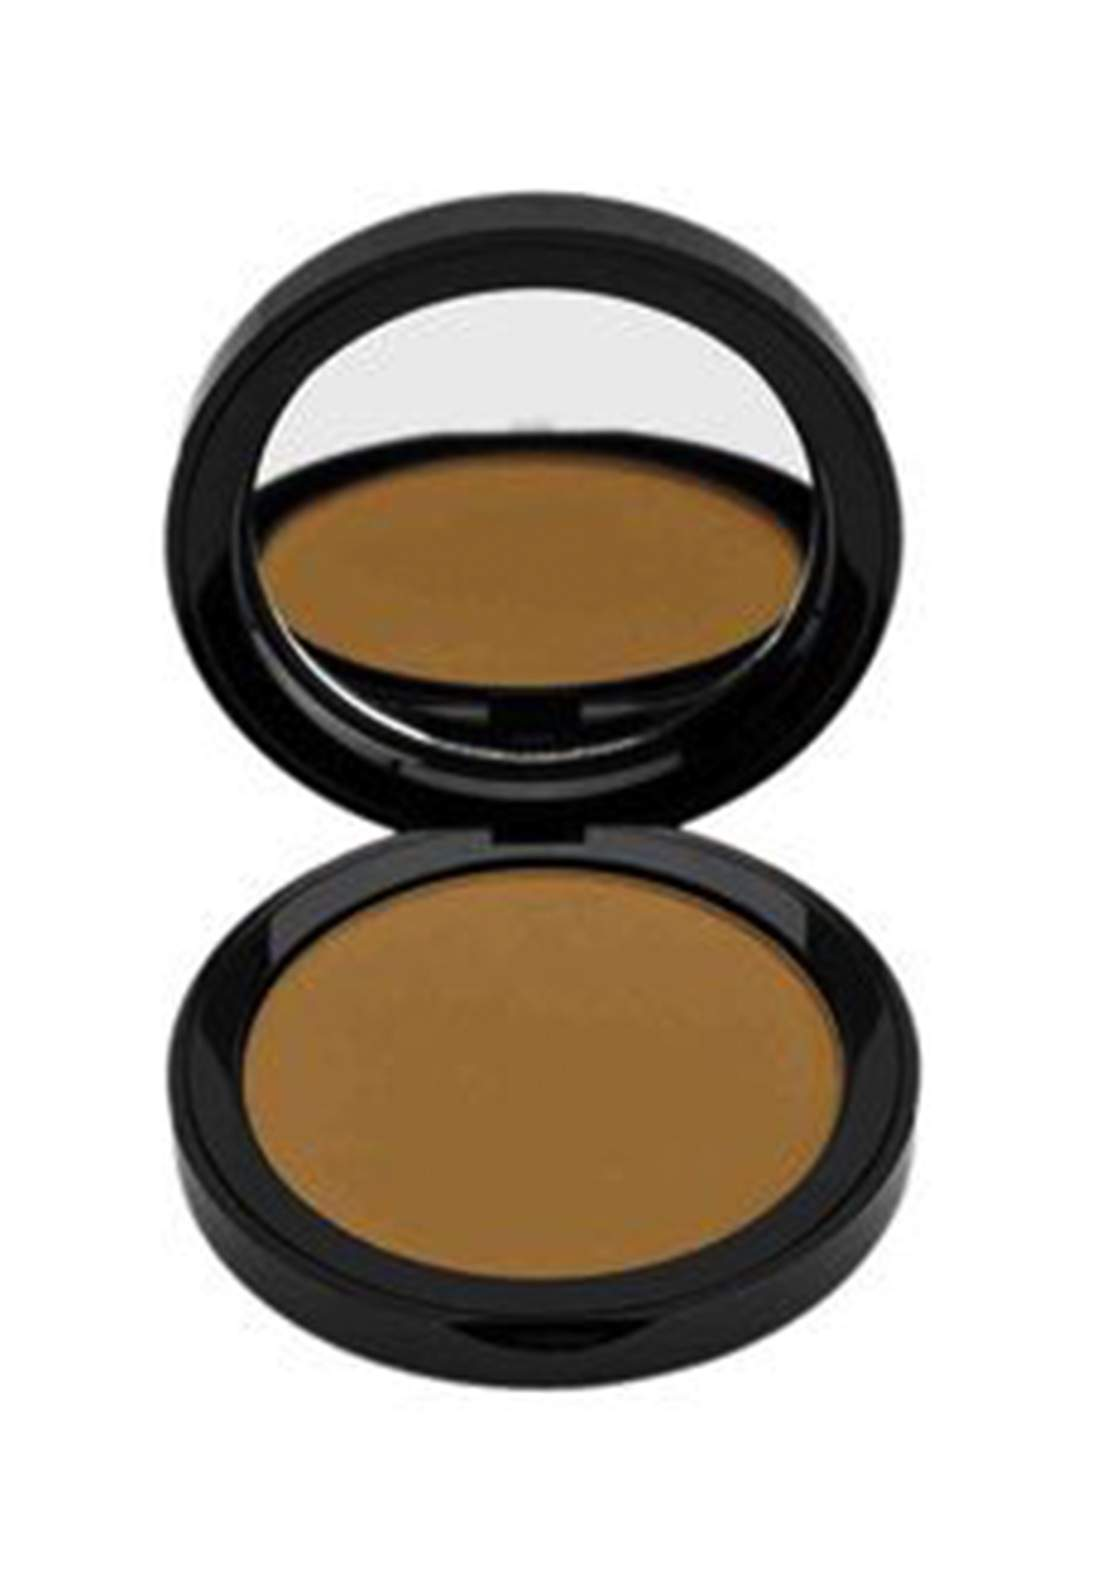 Wow By Wojooh 8D24 Flawless Matte Stay Put Compact Foundation No.8D24 So Arabica 5.9g كريم اساس مضغوط